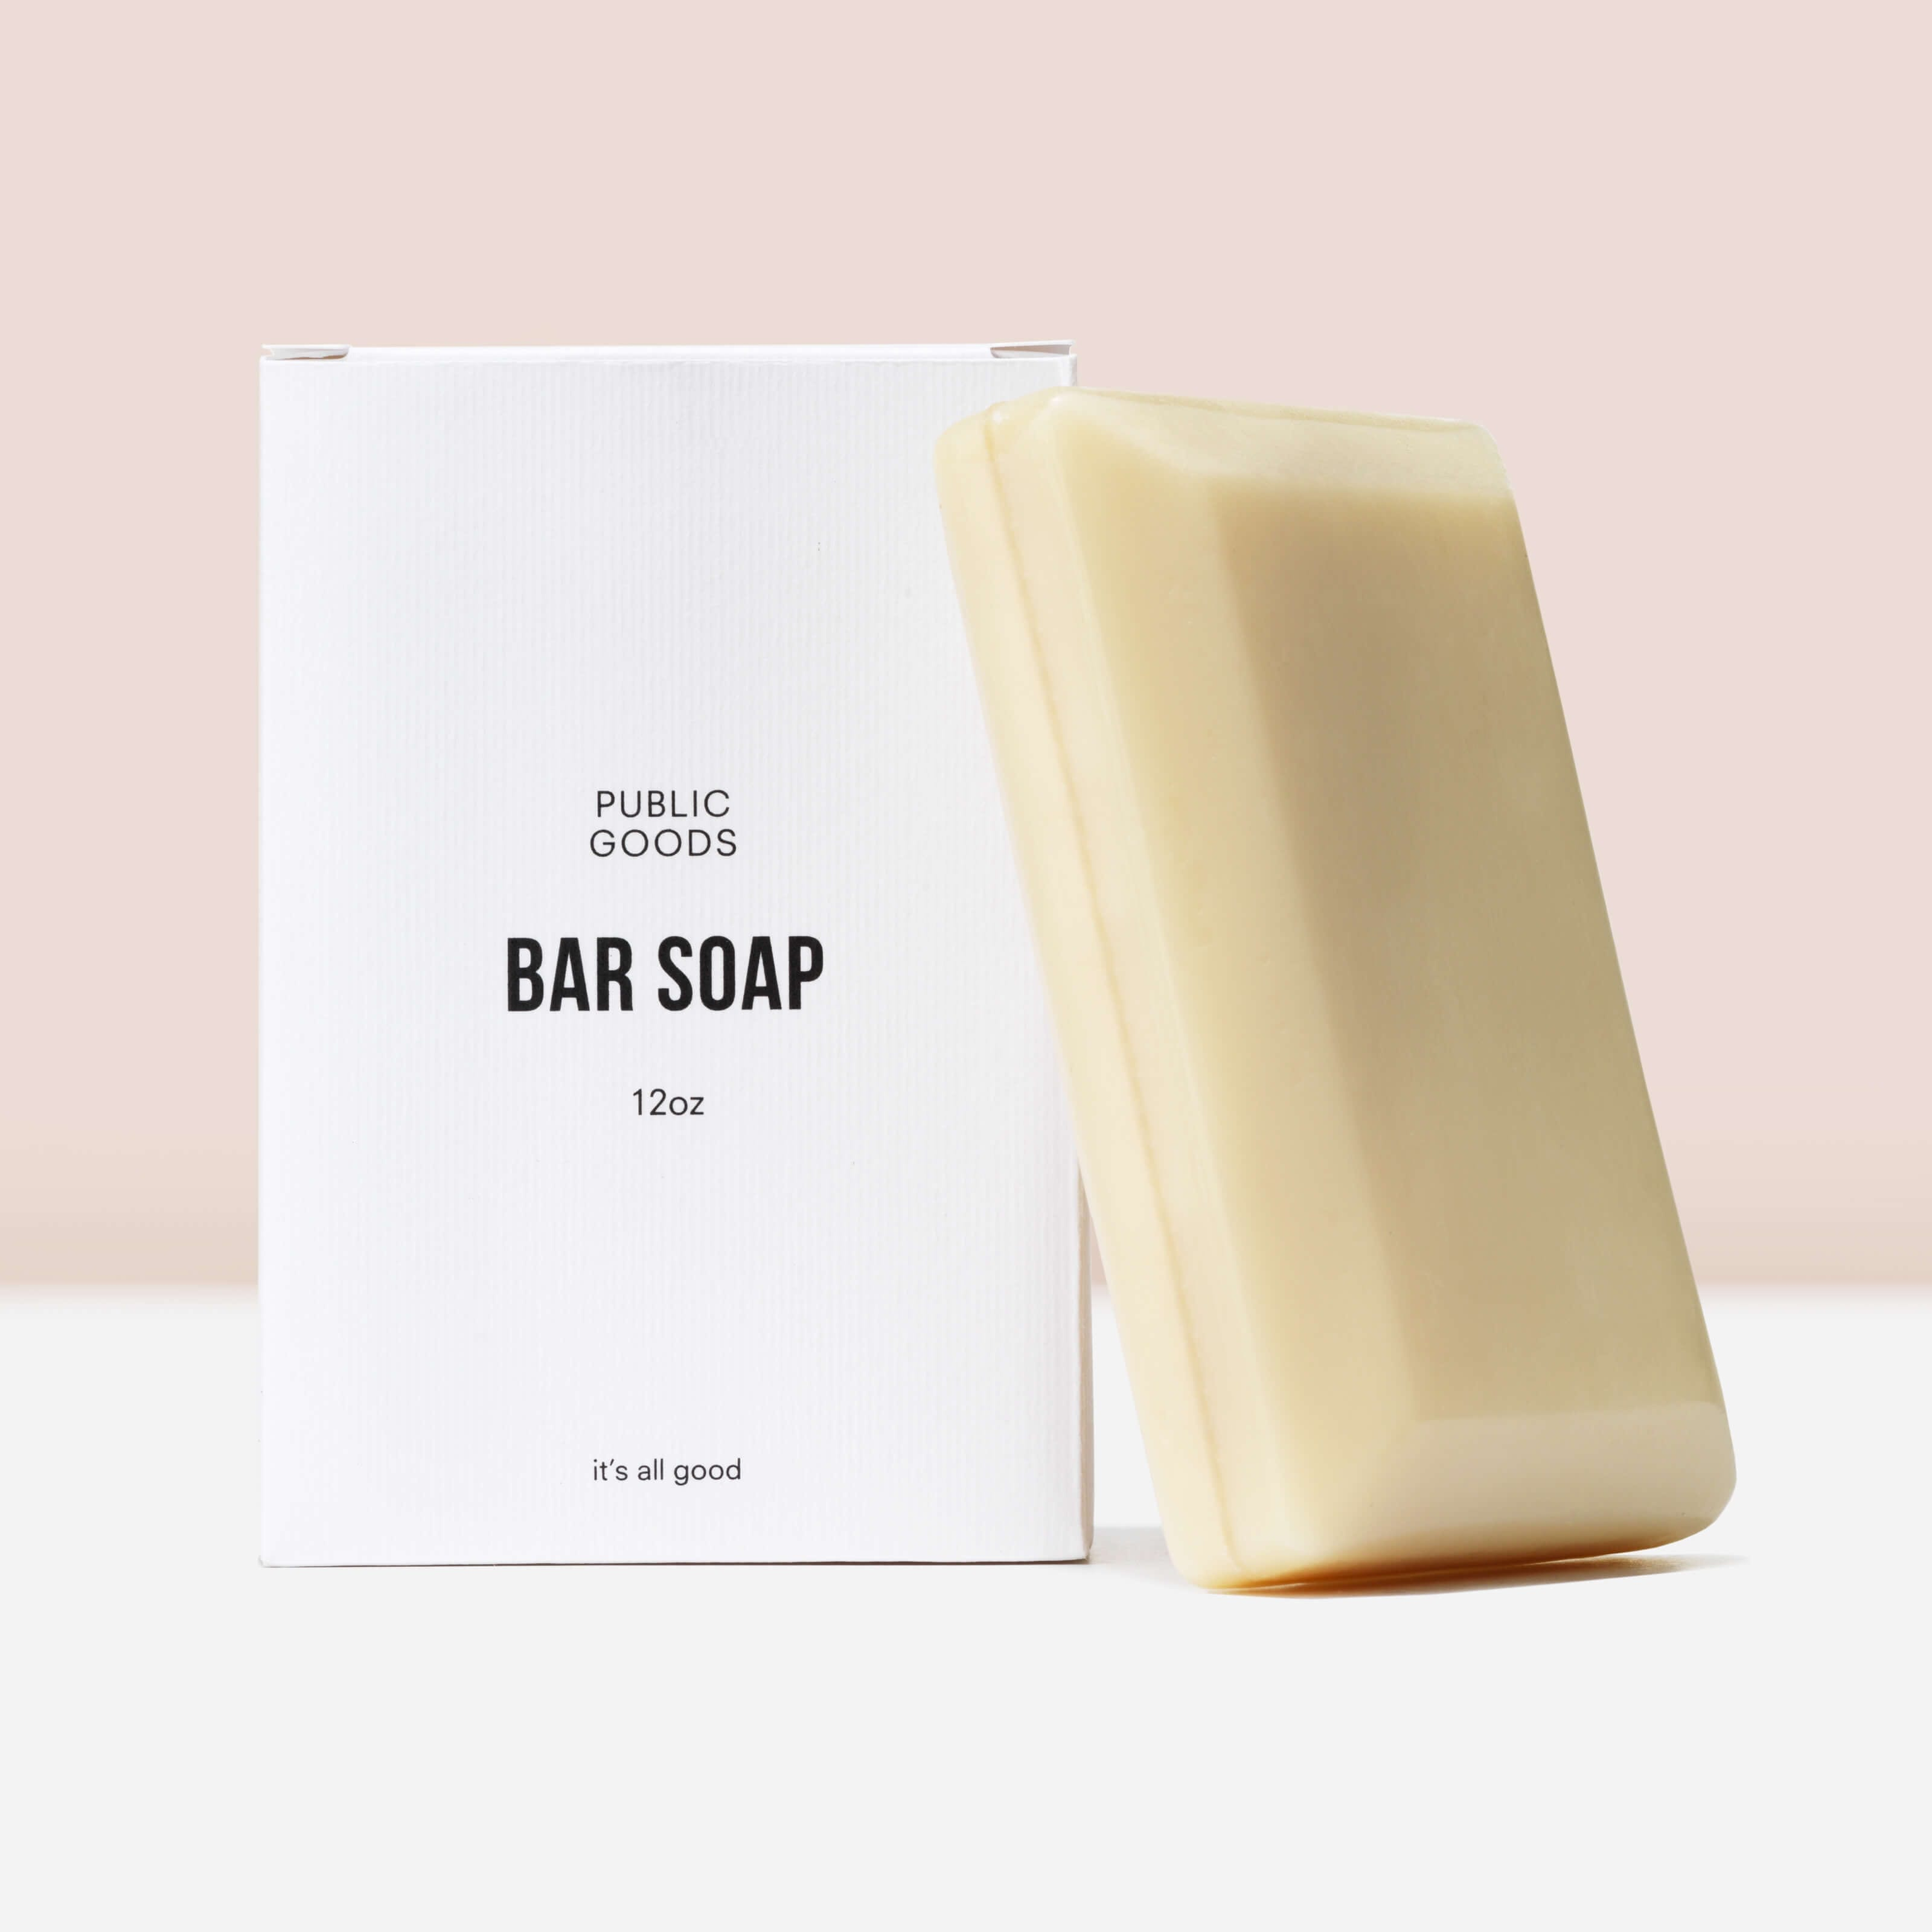 public goods bar soap